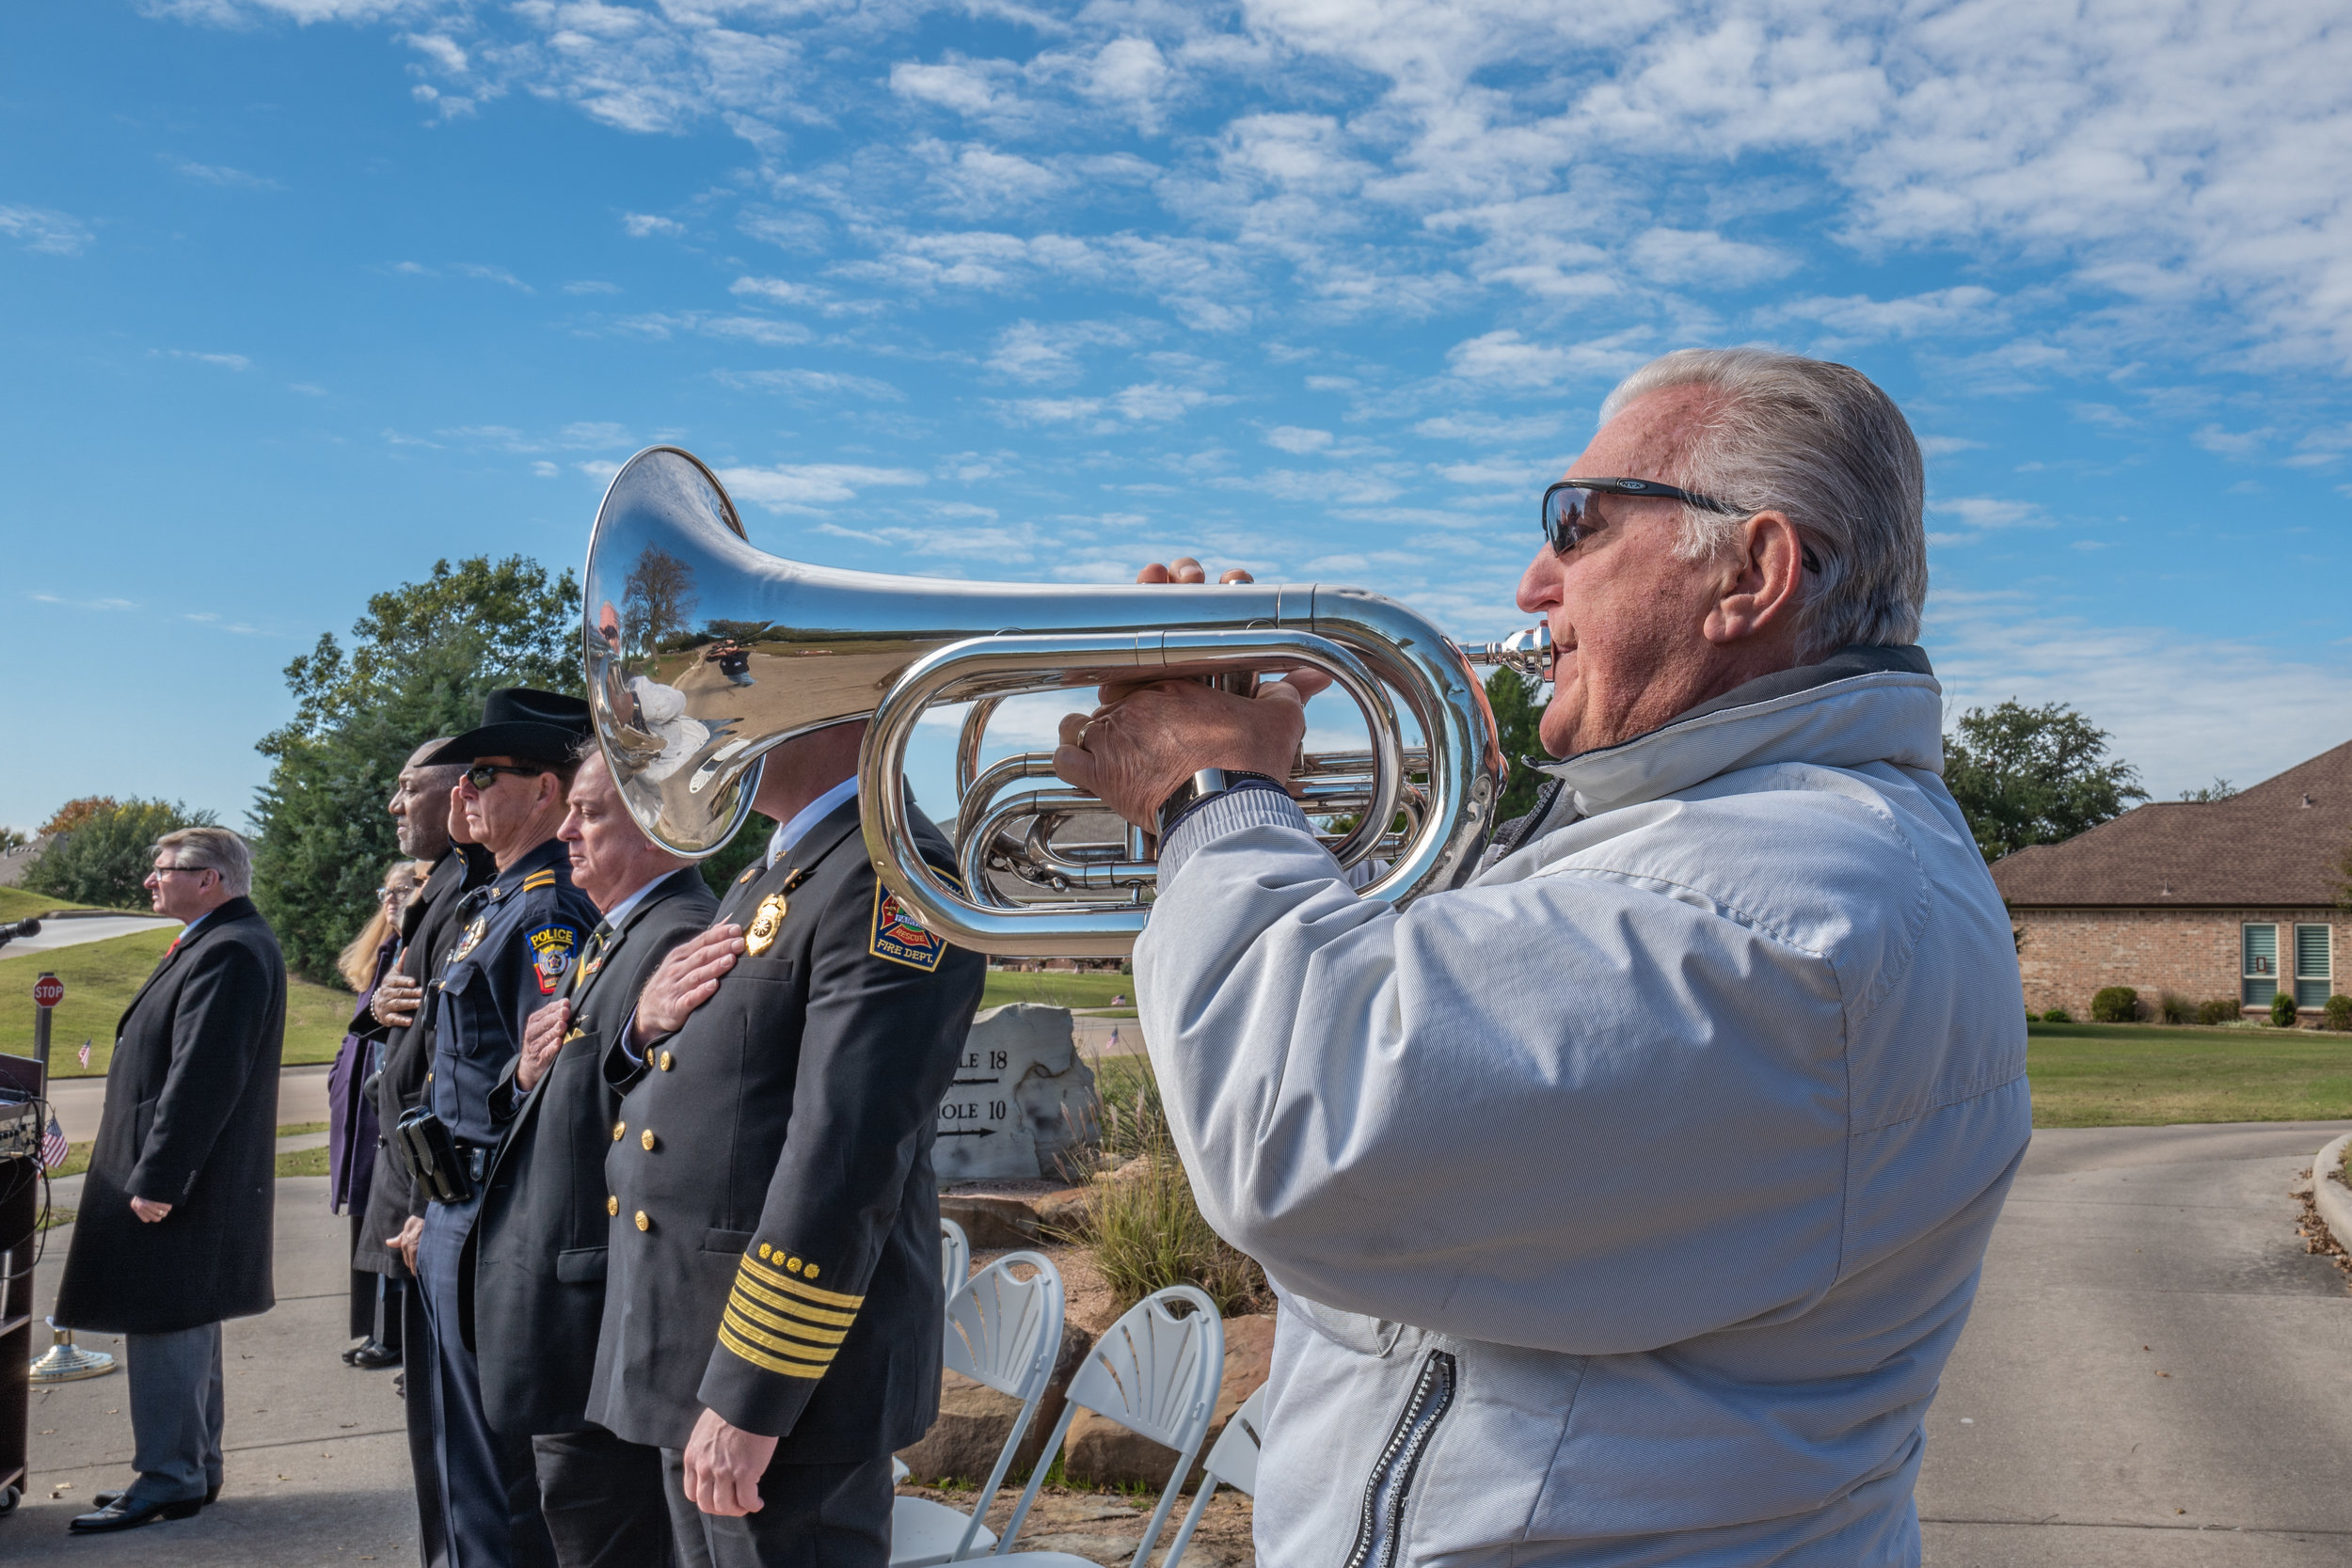 Heritage Ranch resident Al McGee plays Taps to conclude Flags of Honor ceremonies.